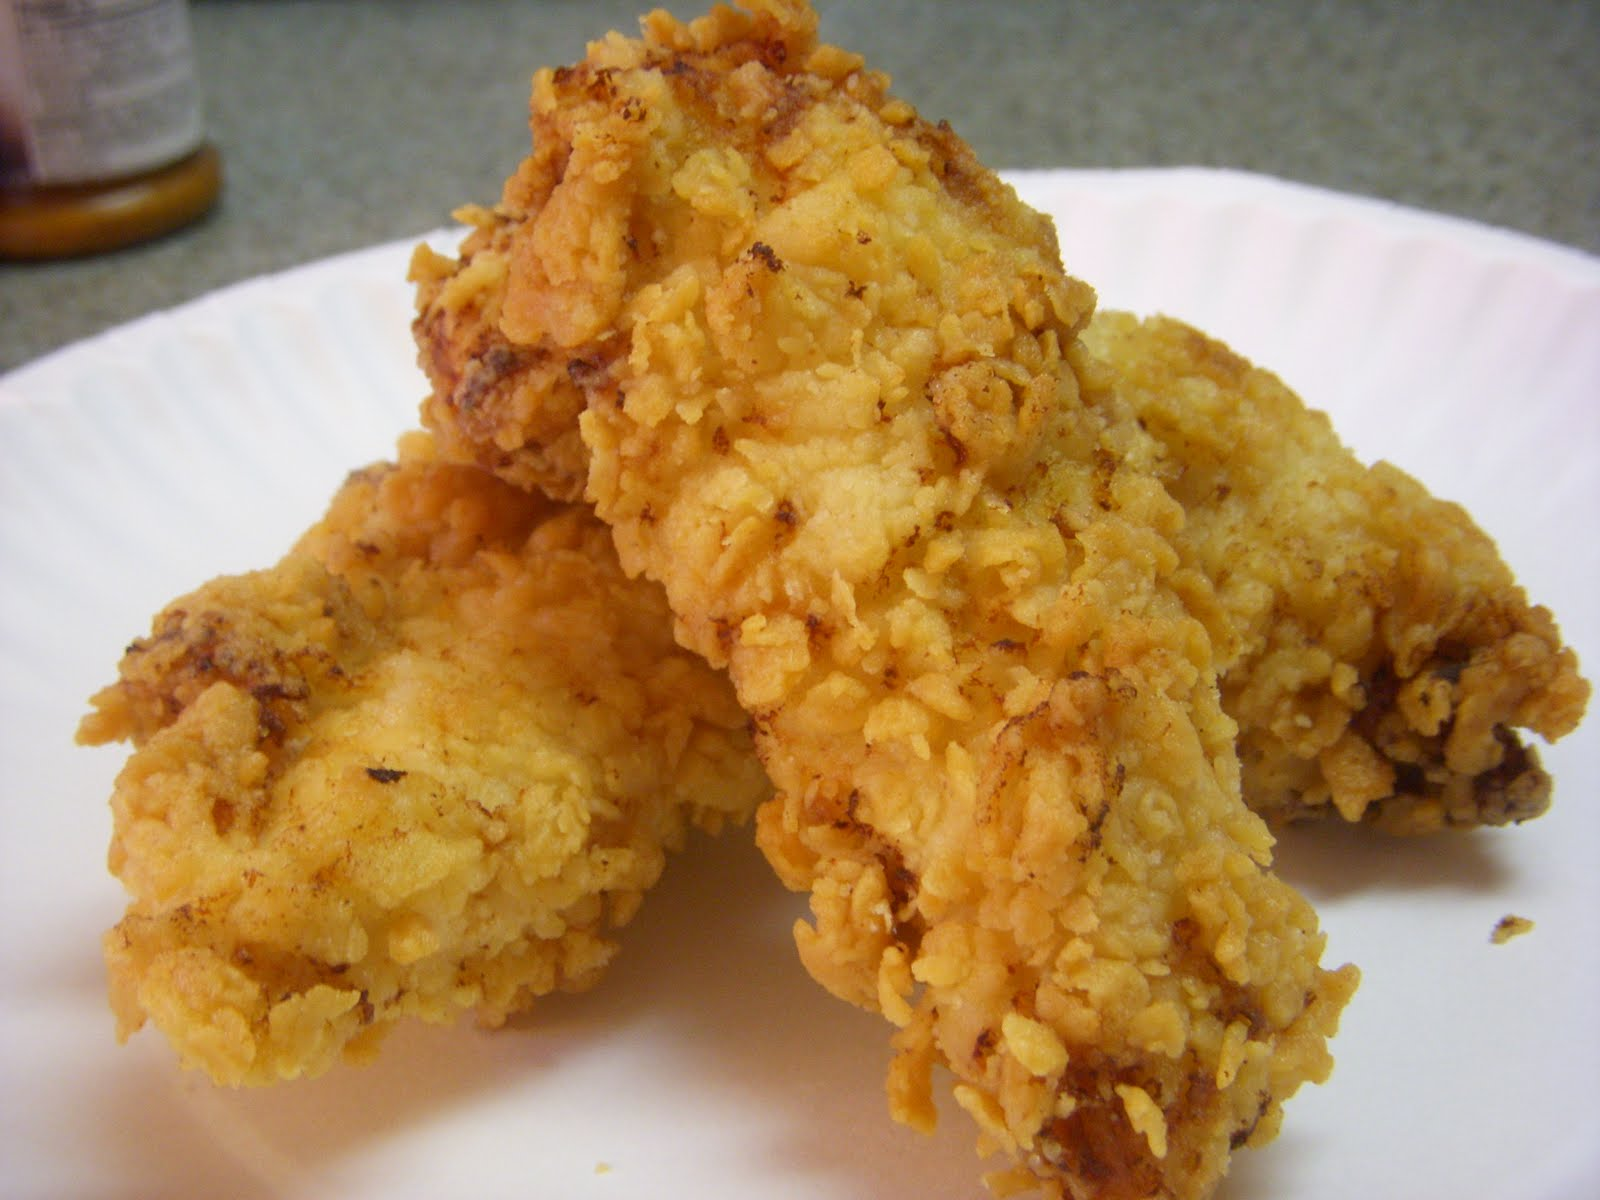 Meals By Morgan: Homemade Chicken Tenders